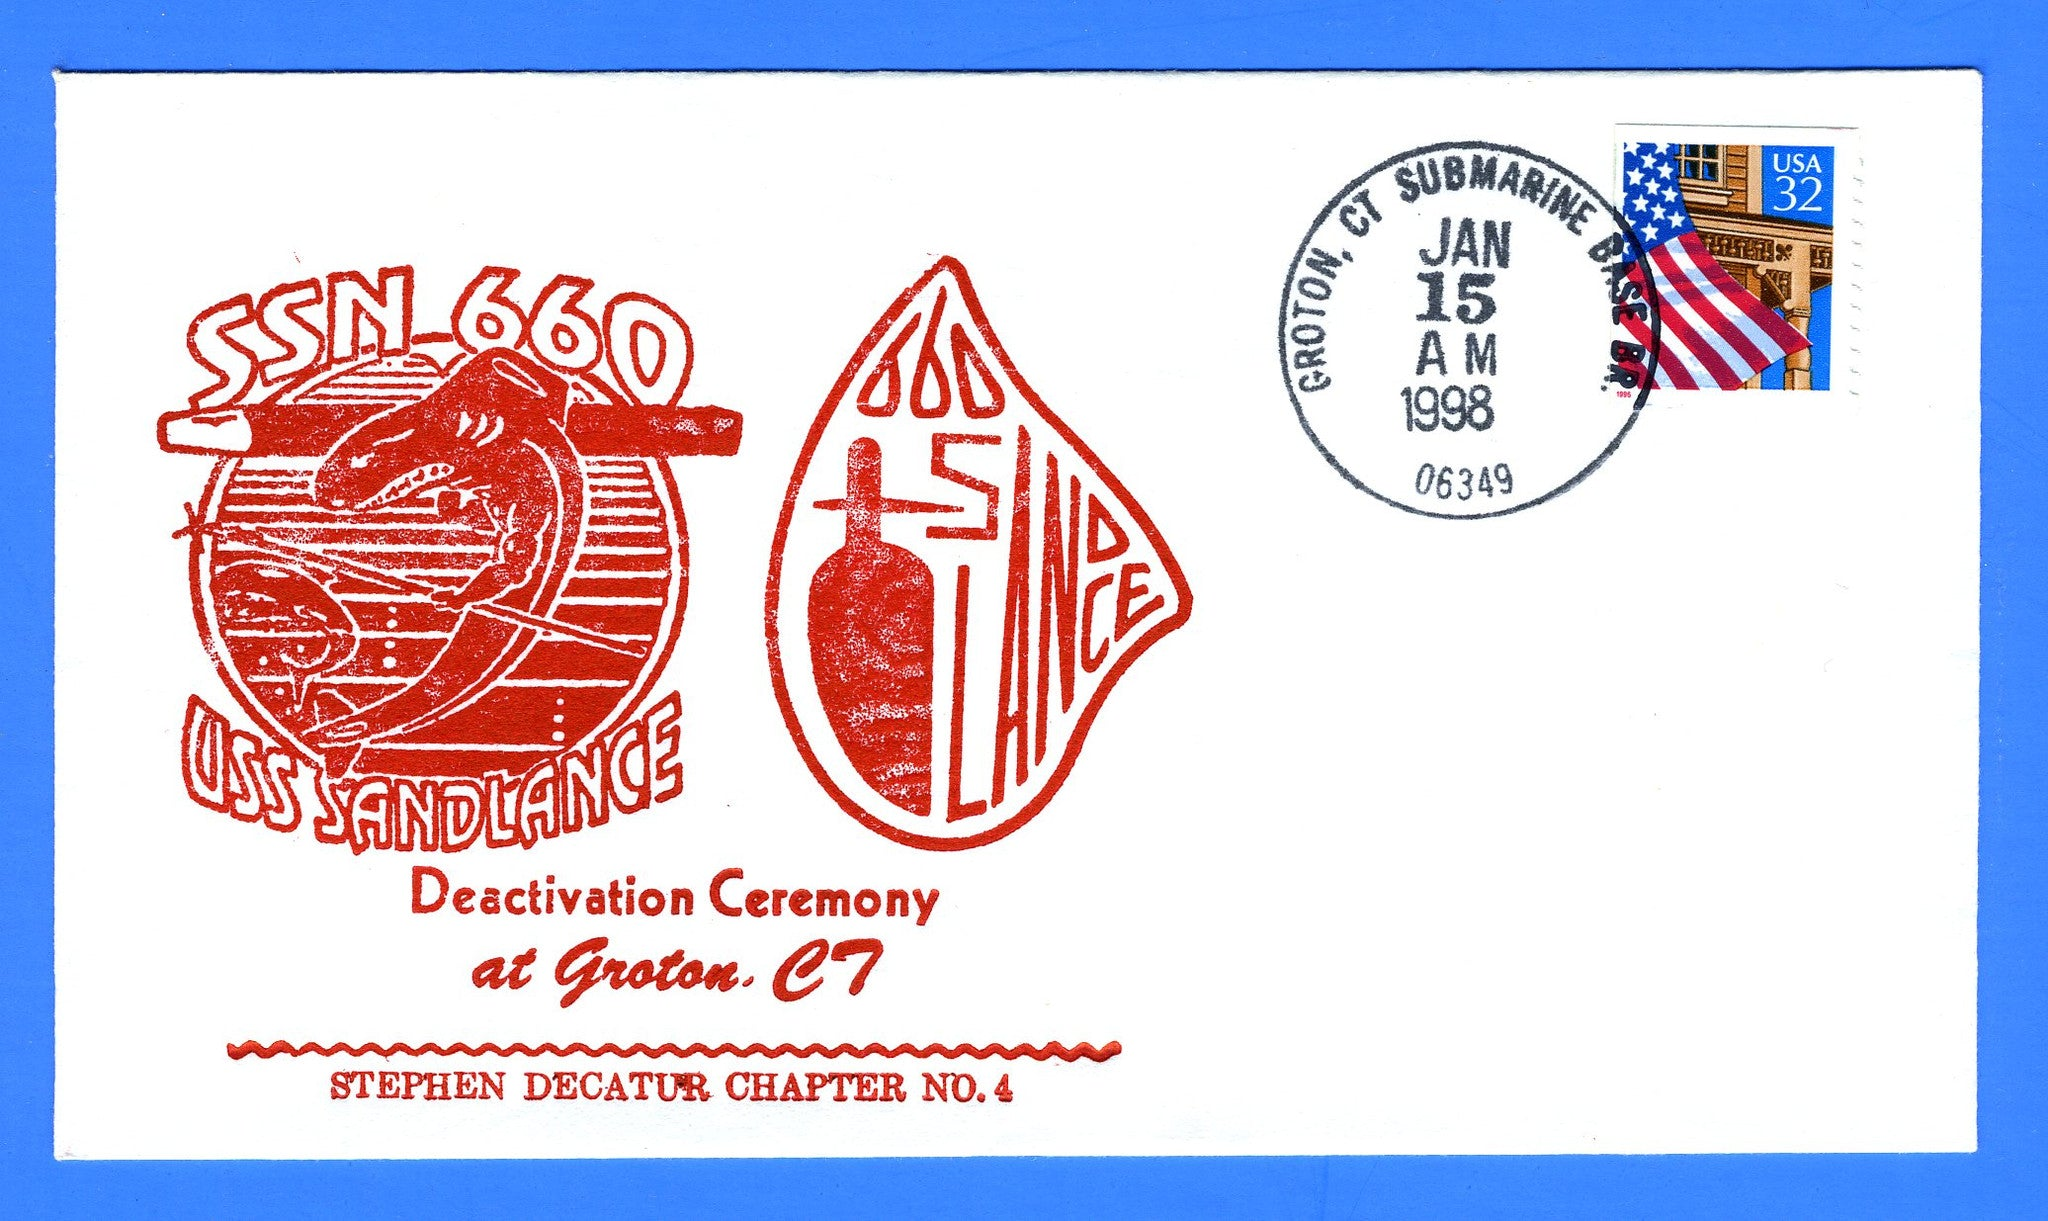 USS Sand Lance SSN-660 Deactivation Ceremony January 15, 1998 - Cachet by USS Decatur Chapter No. 4, USCS